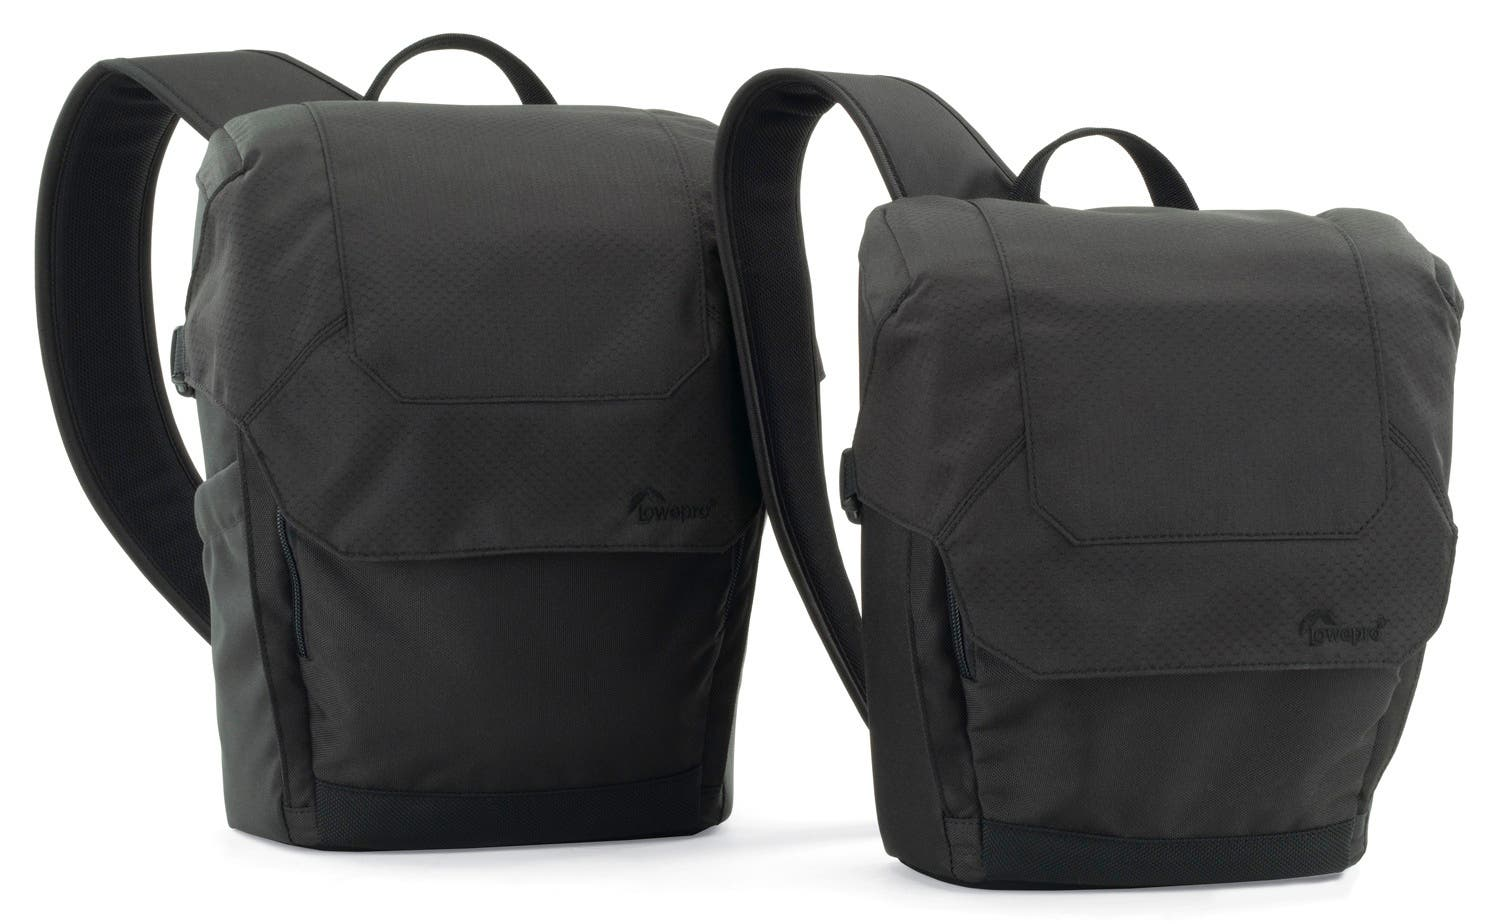 New Lowepro Bags For City or Street